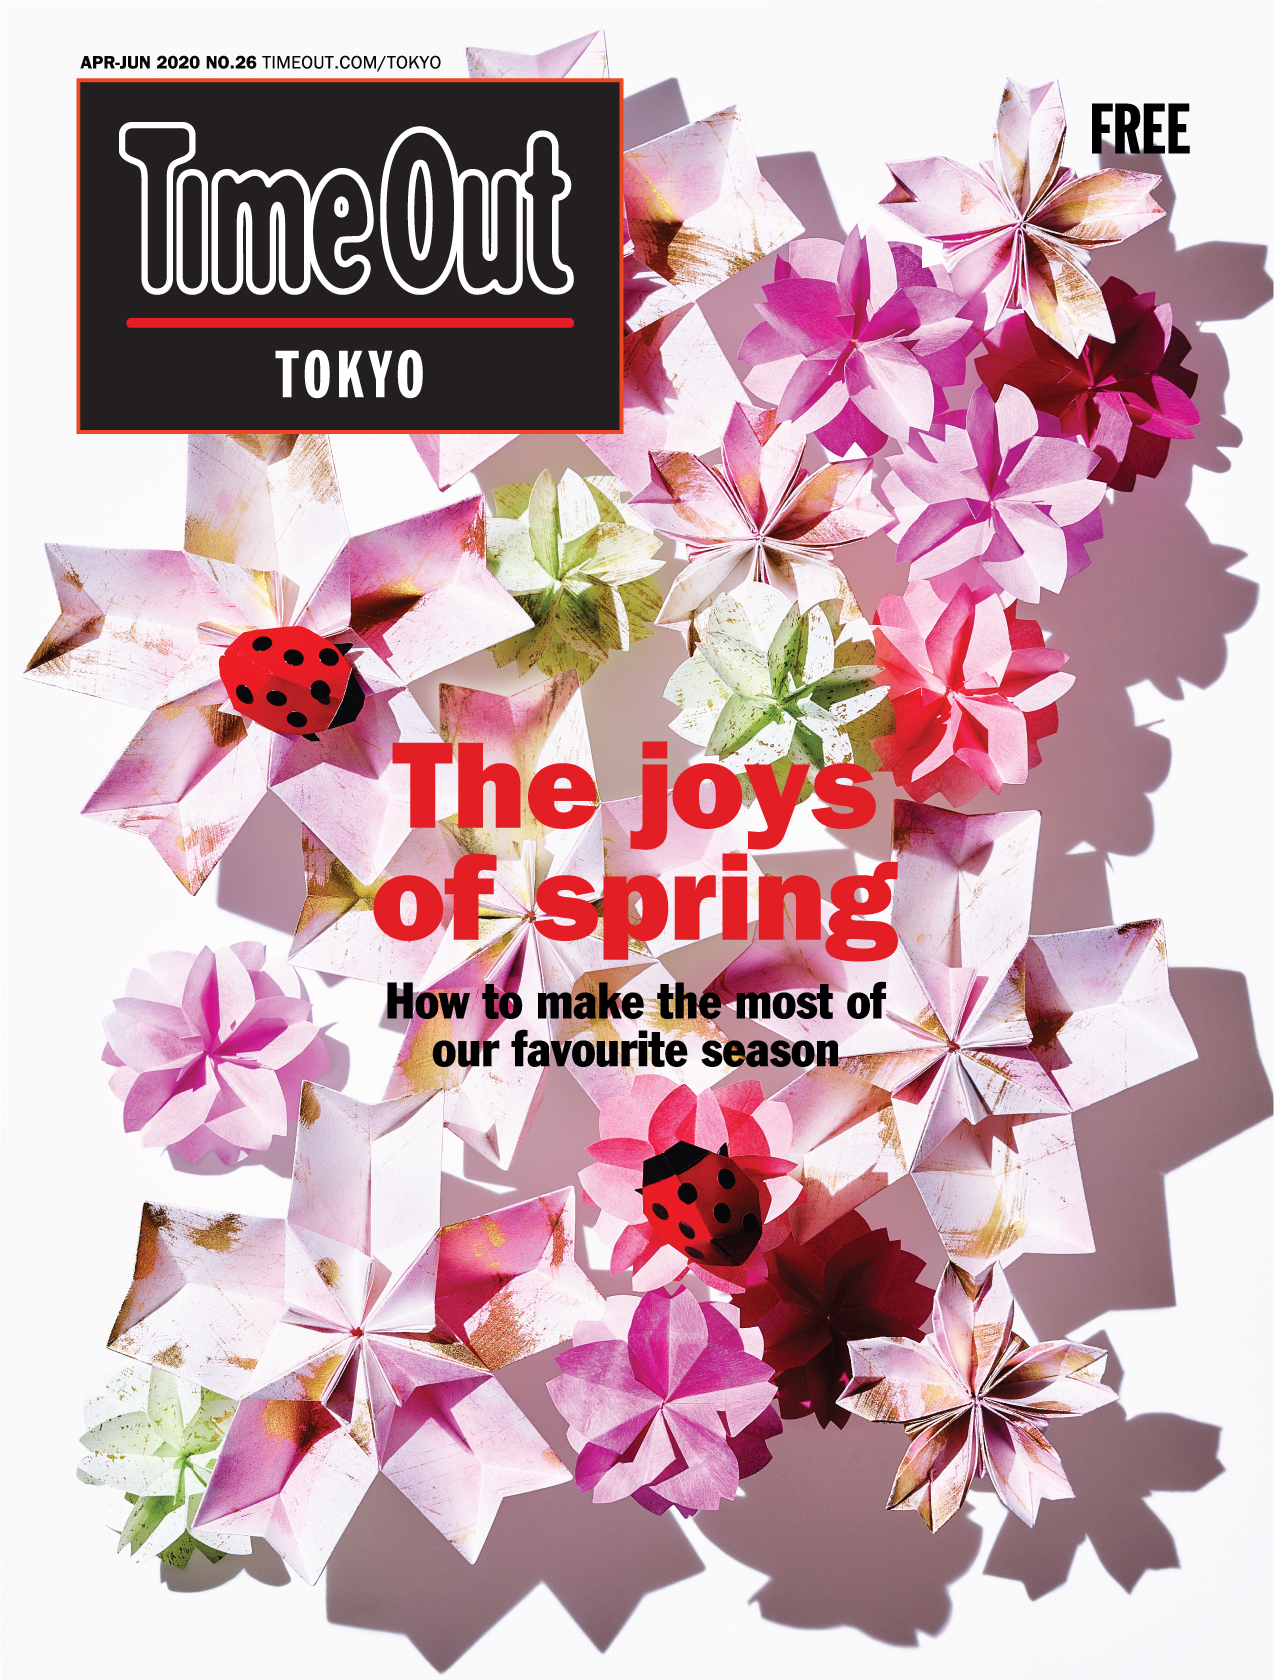 Time Out Tokyo magazine  issue 26 cover, cherry blossoms, origami